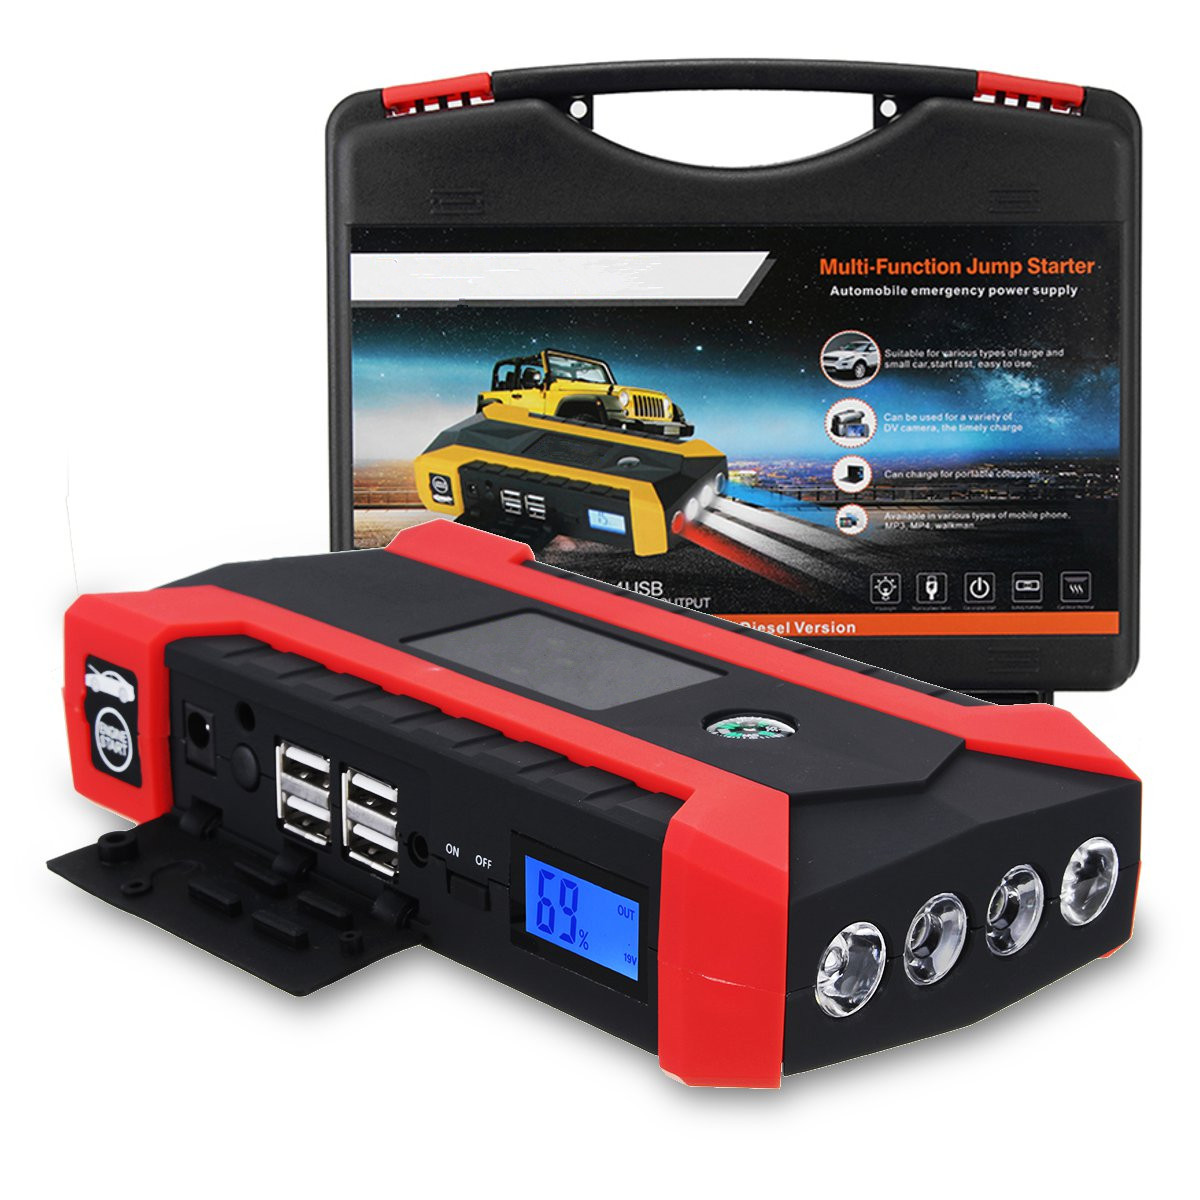 Car Jump Starter 600A 89800mAh Multifunction Car Charger Battery Jump Starter 4USB LED Light Auto Emergency Mobile Power Bank new 12v 89800mah portable 4usb car jump starter power bank tool kit booster charger battery automobile emergency led light